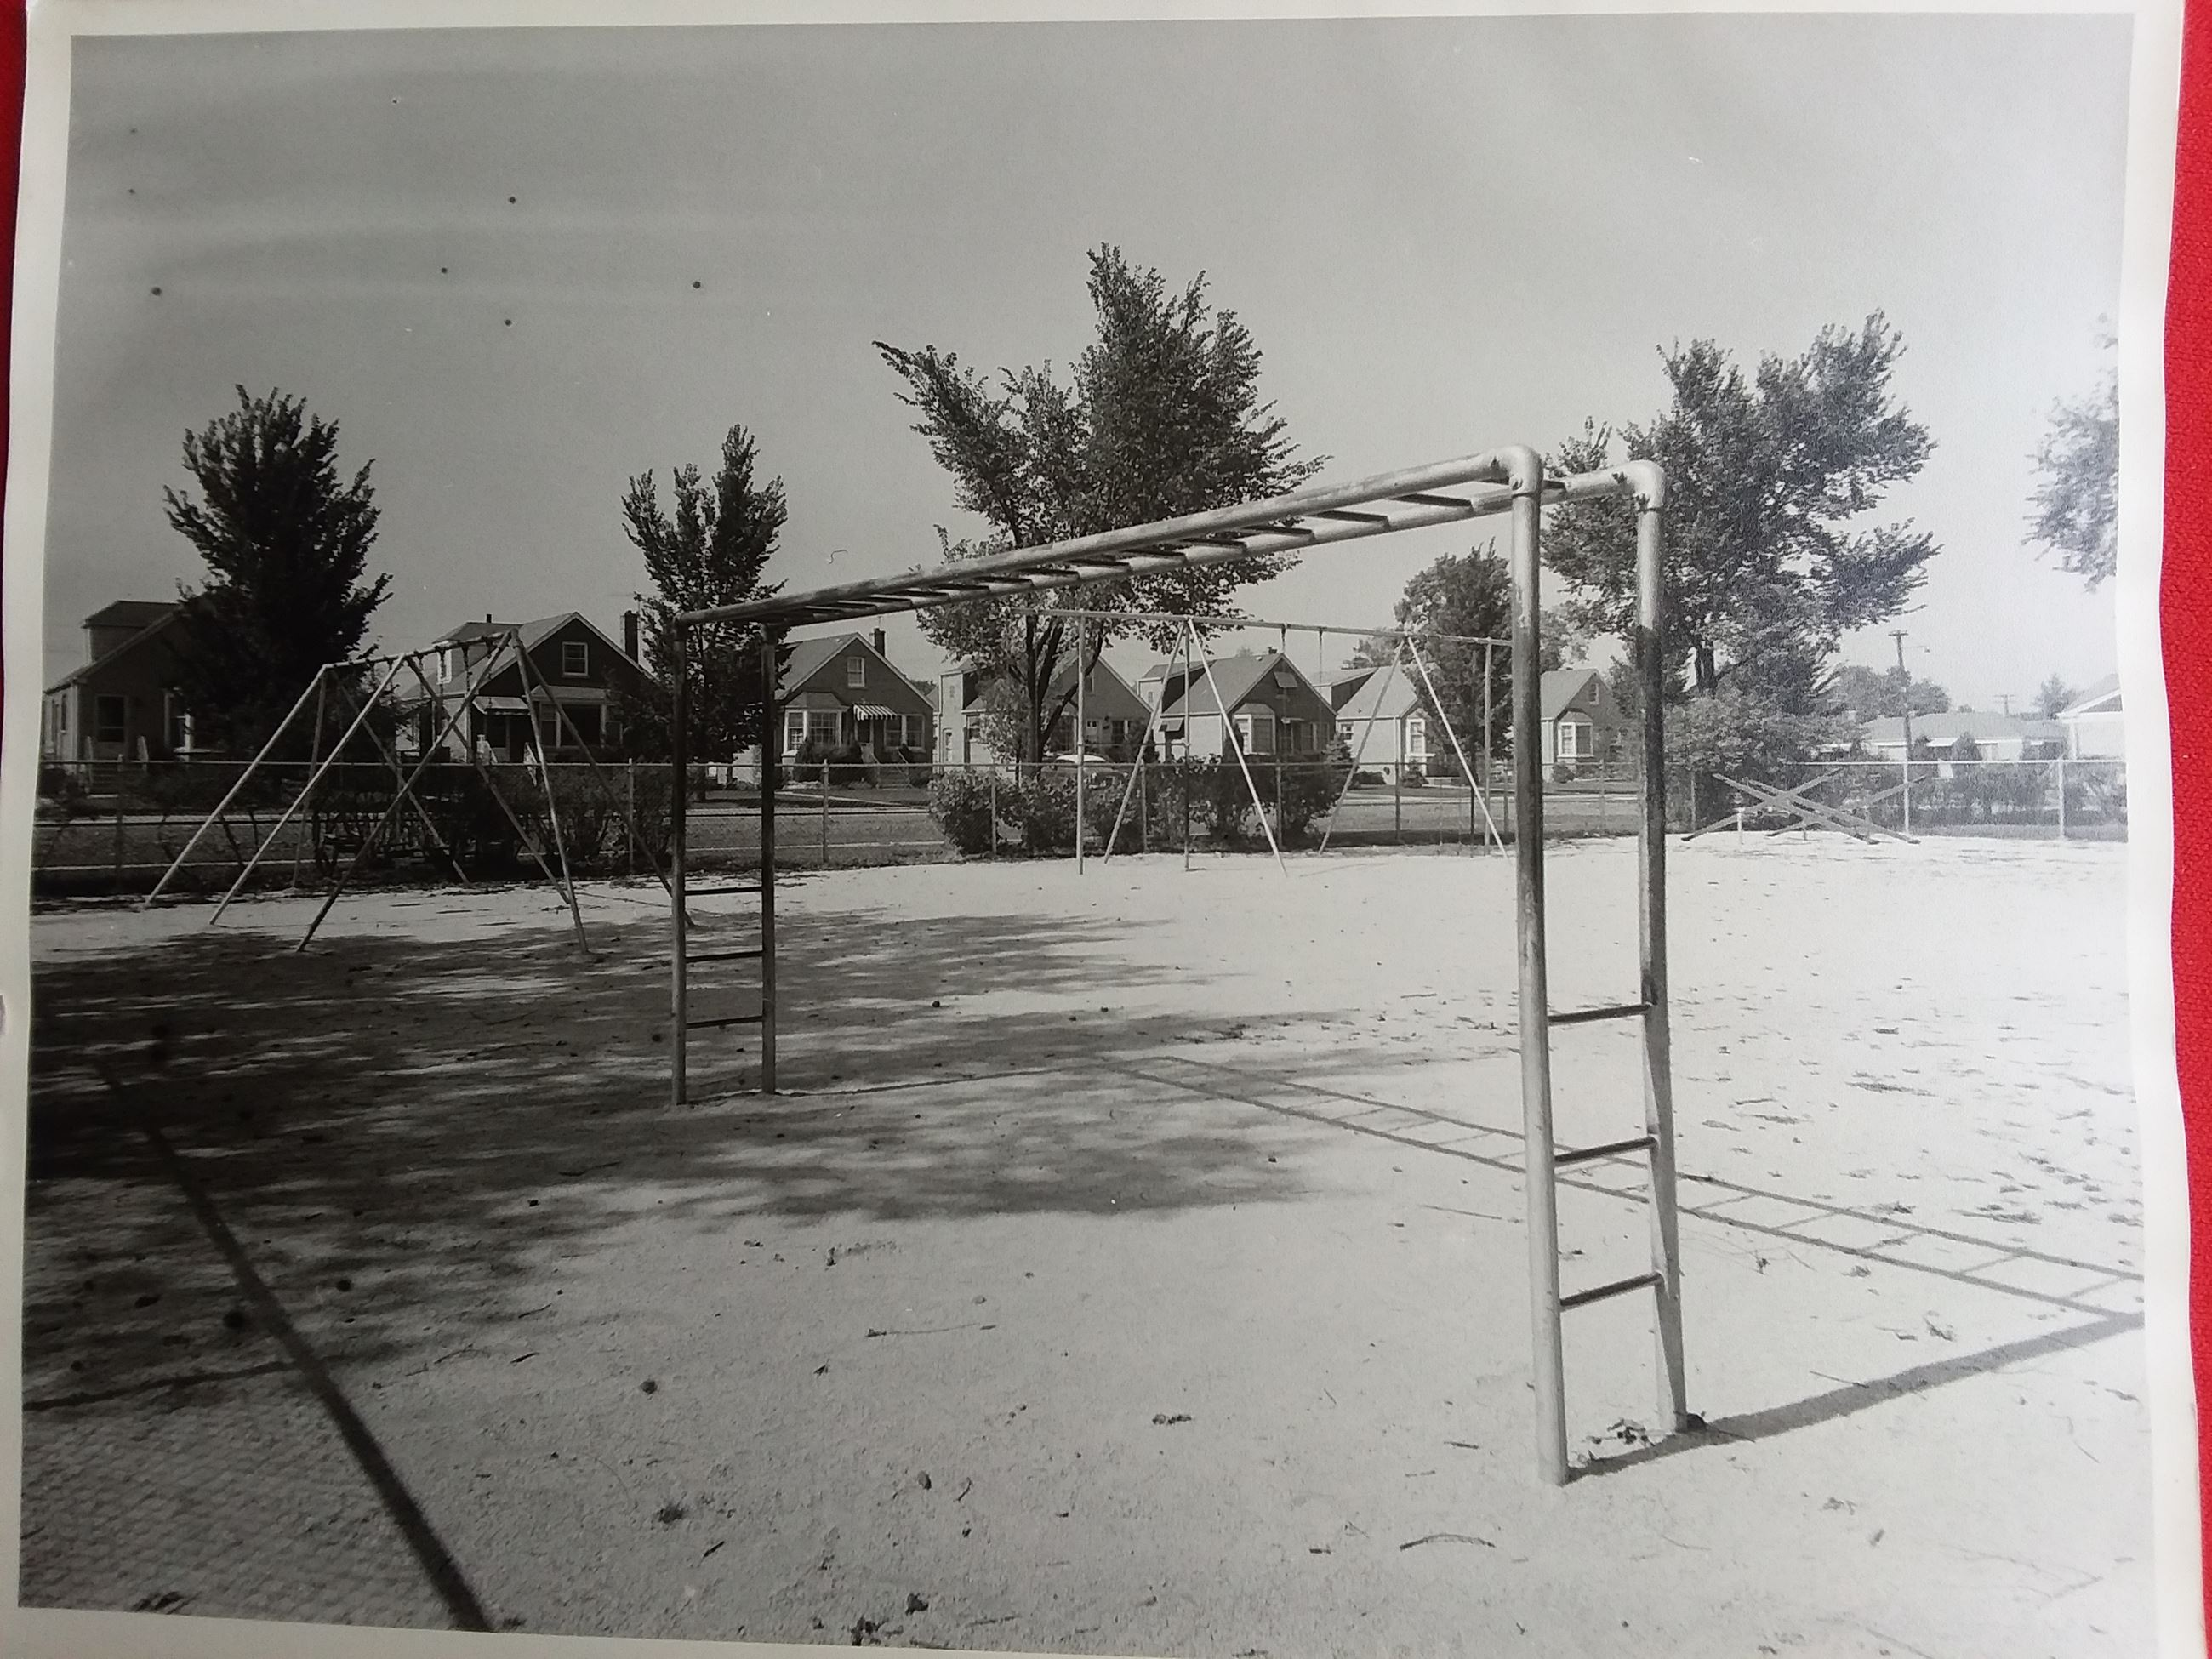 Looking northwest from the Trumbull Park playground in the 1960's